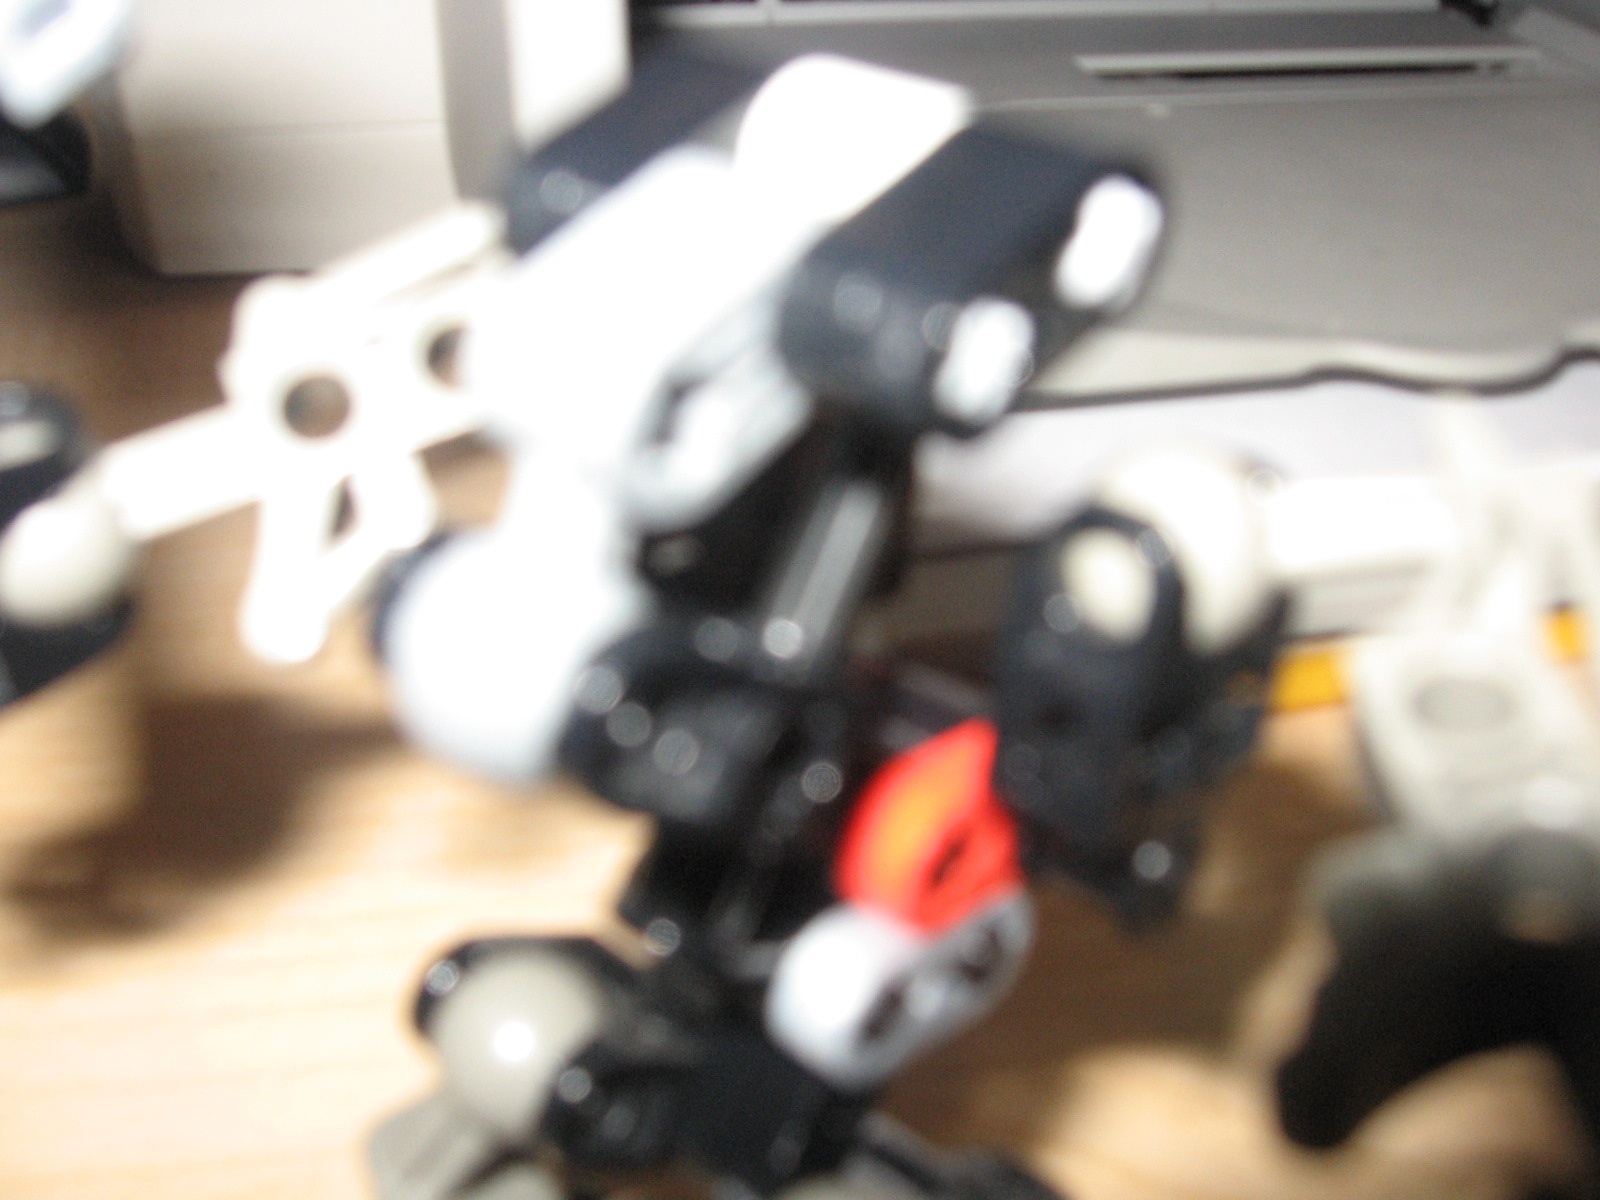 bionicle_such_and_such_022.jpg